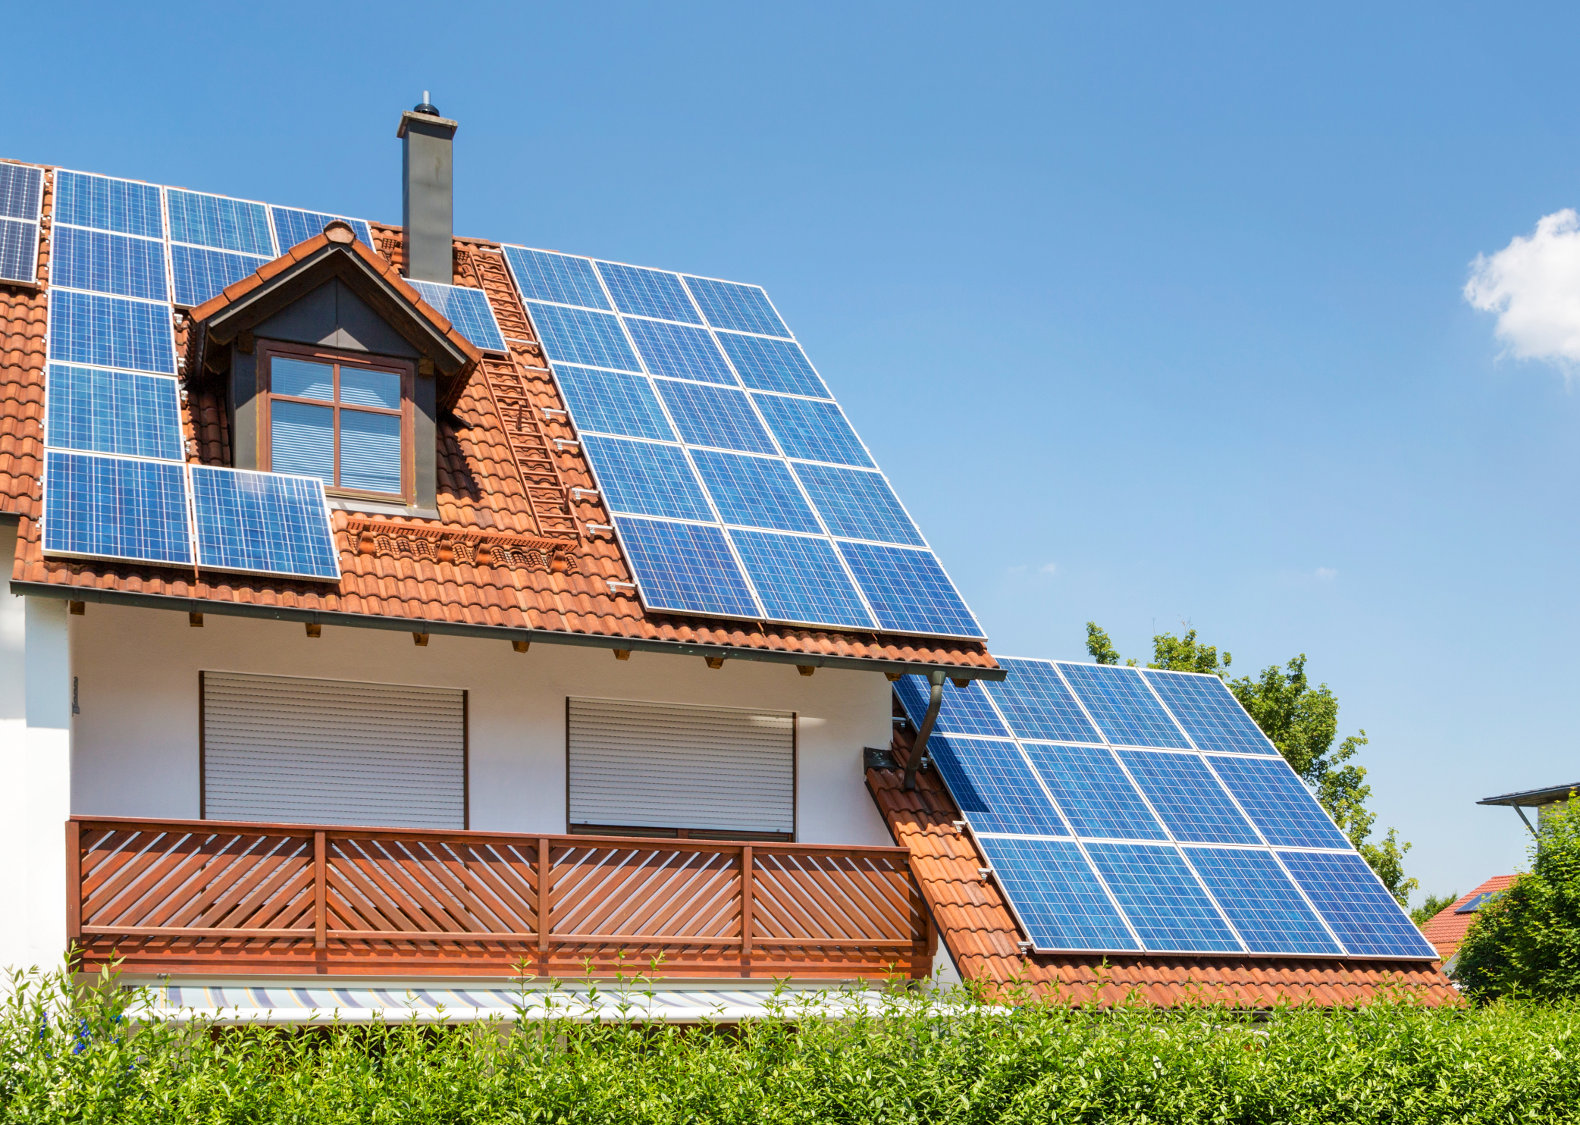 Residential Solar Panel Installations Just Hit A New